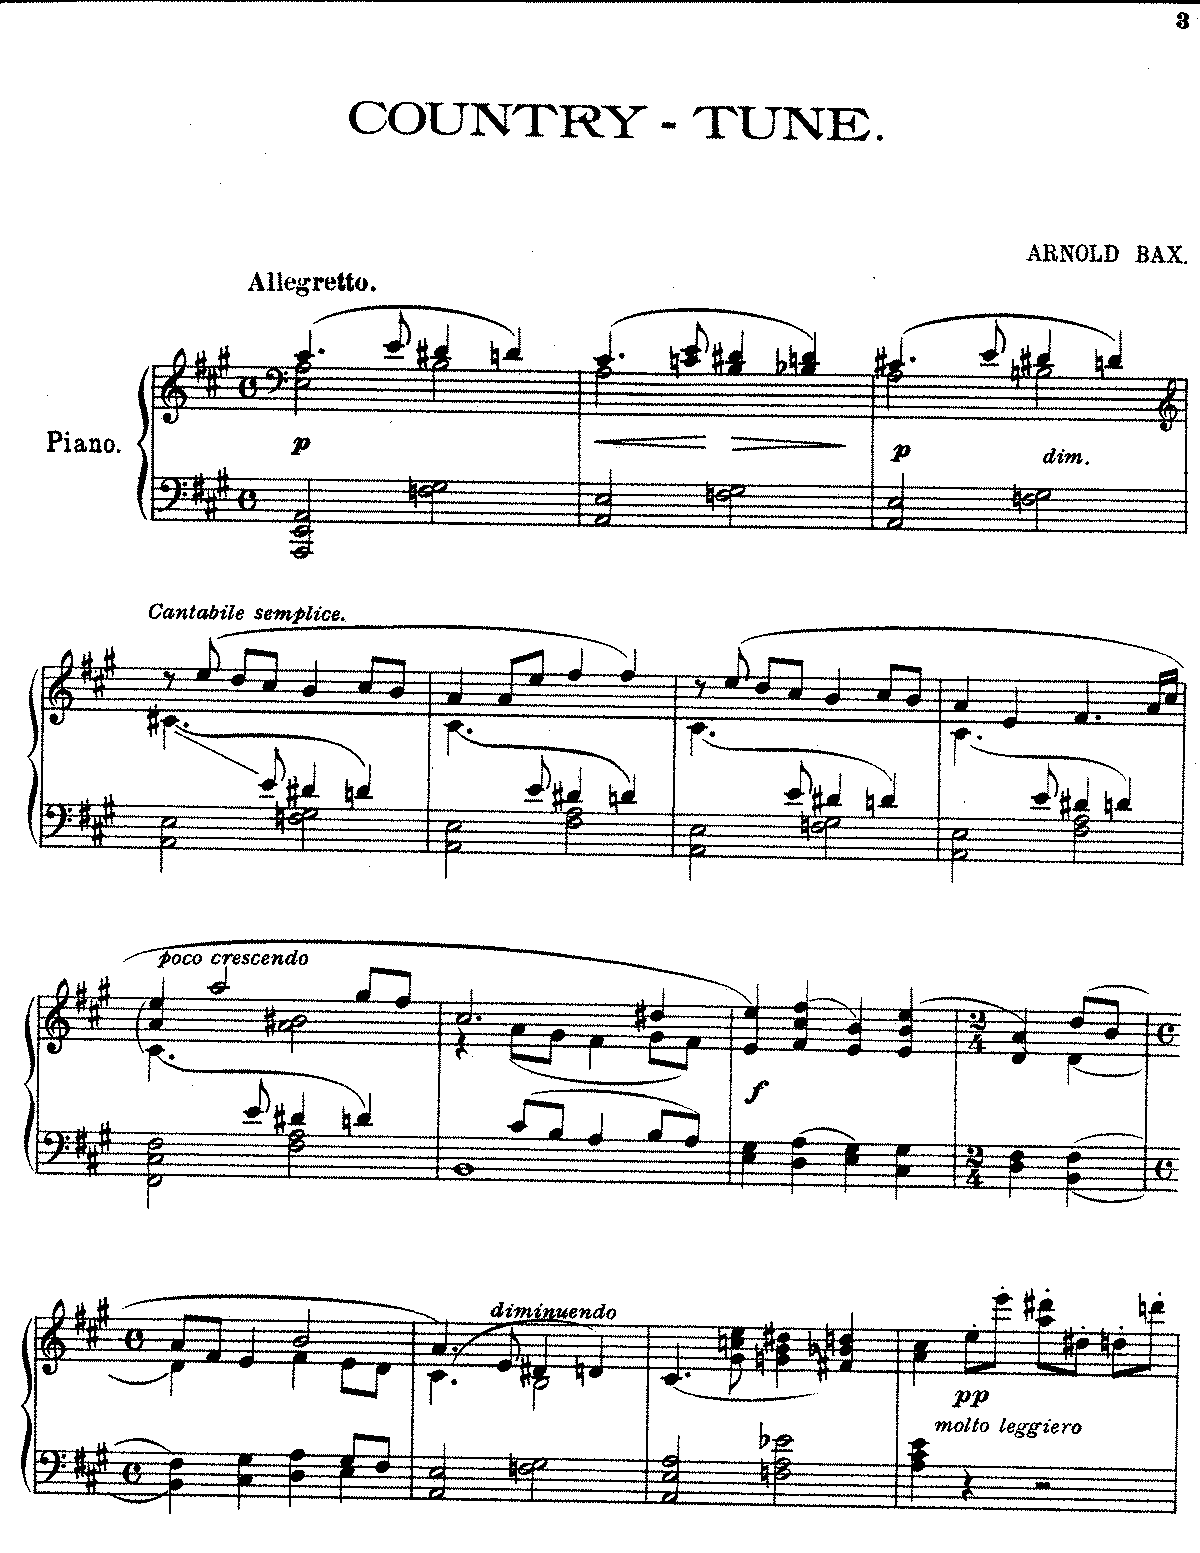 Bax (1920) Country Tune.pdf